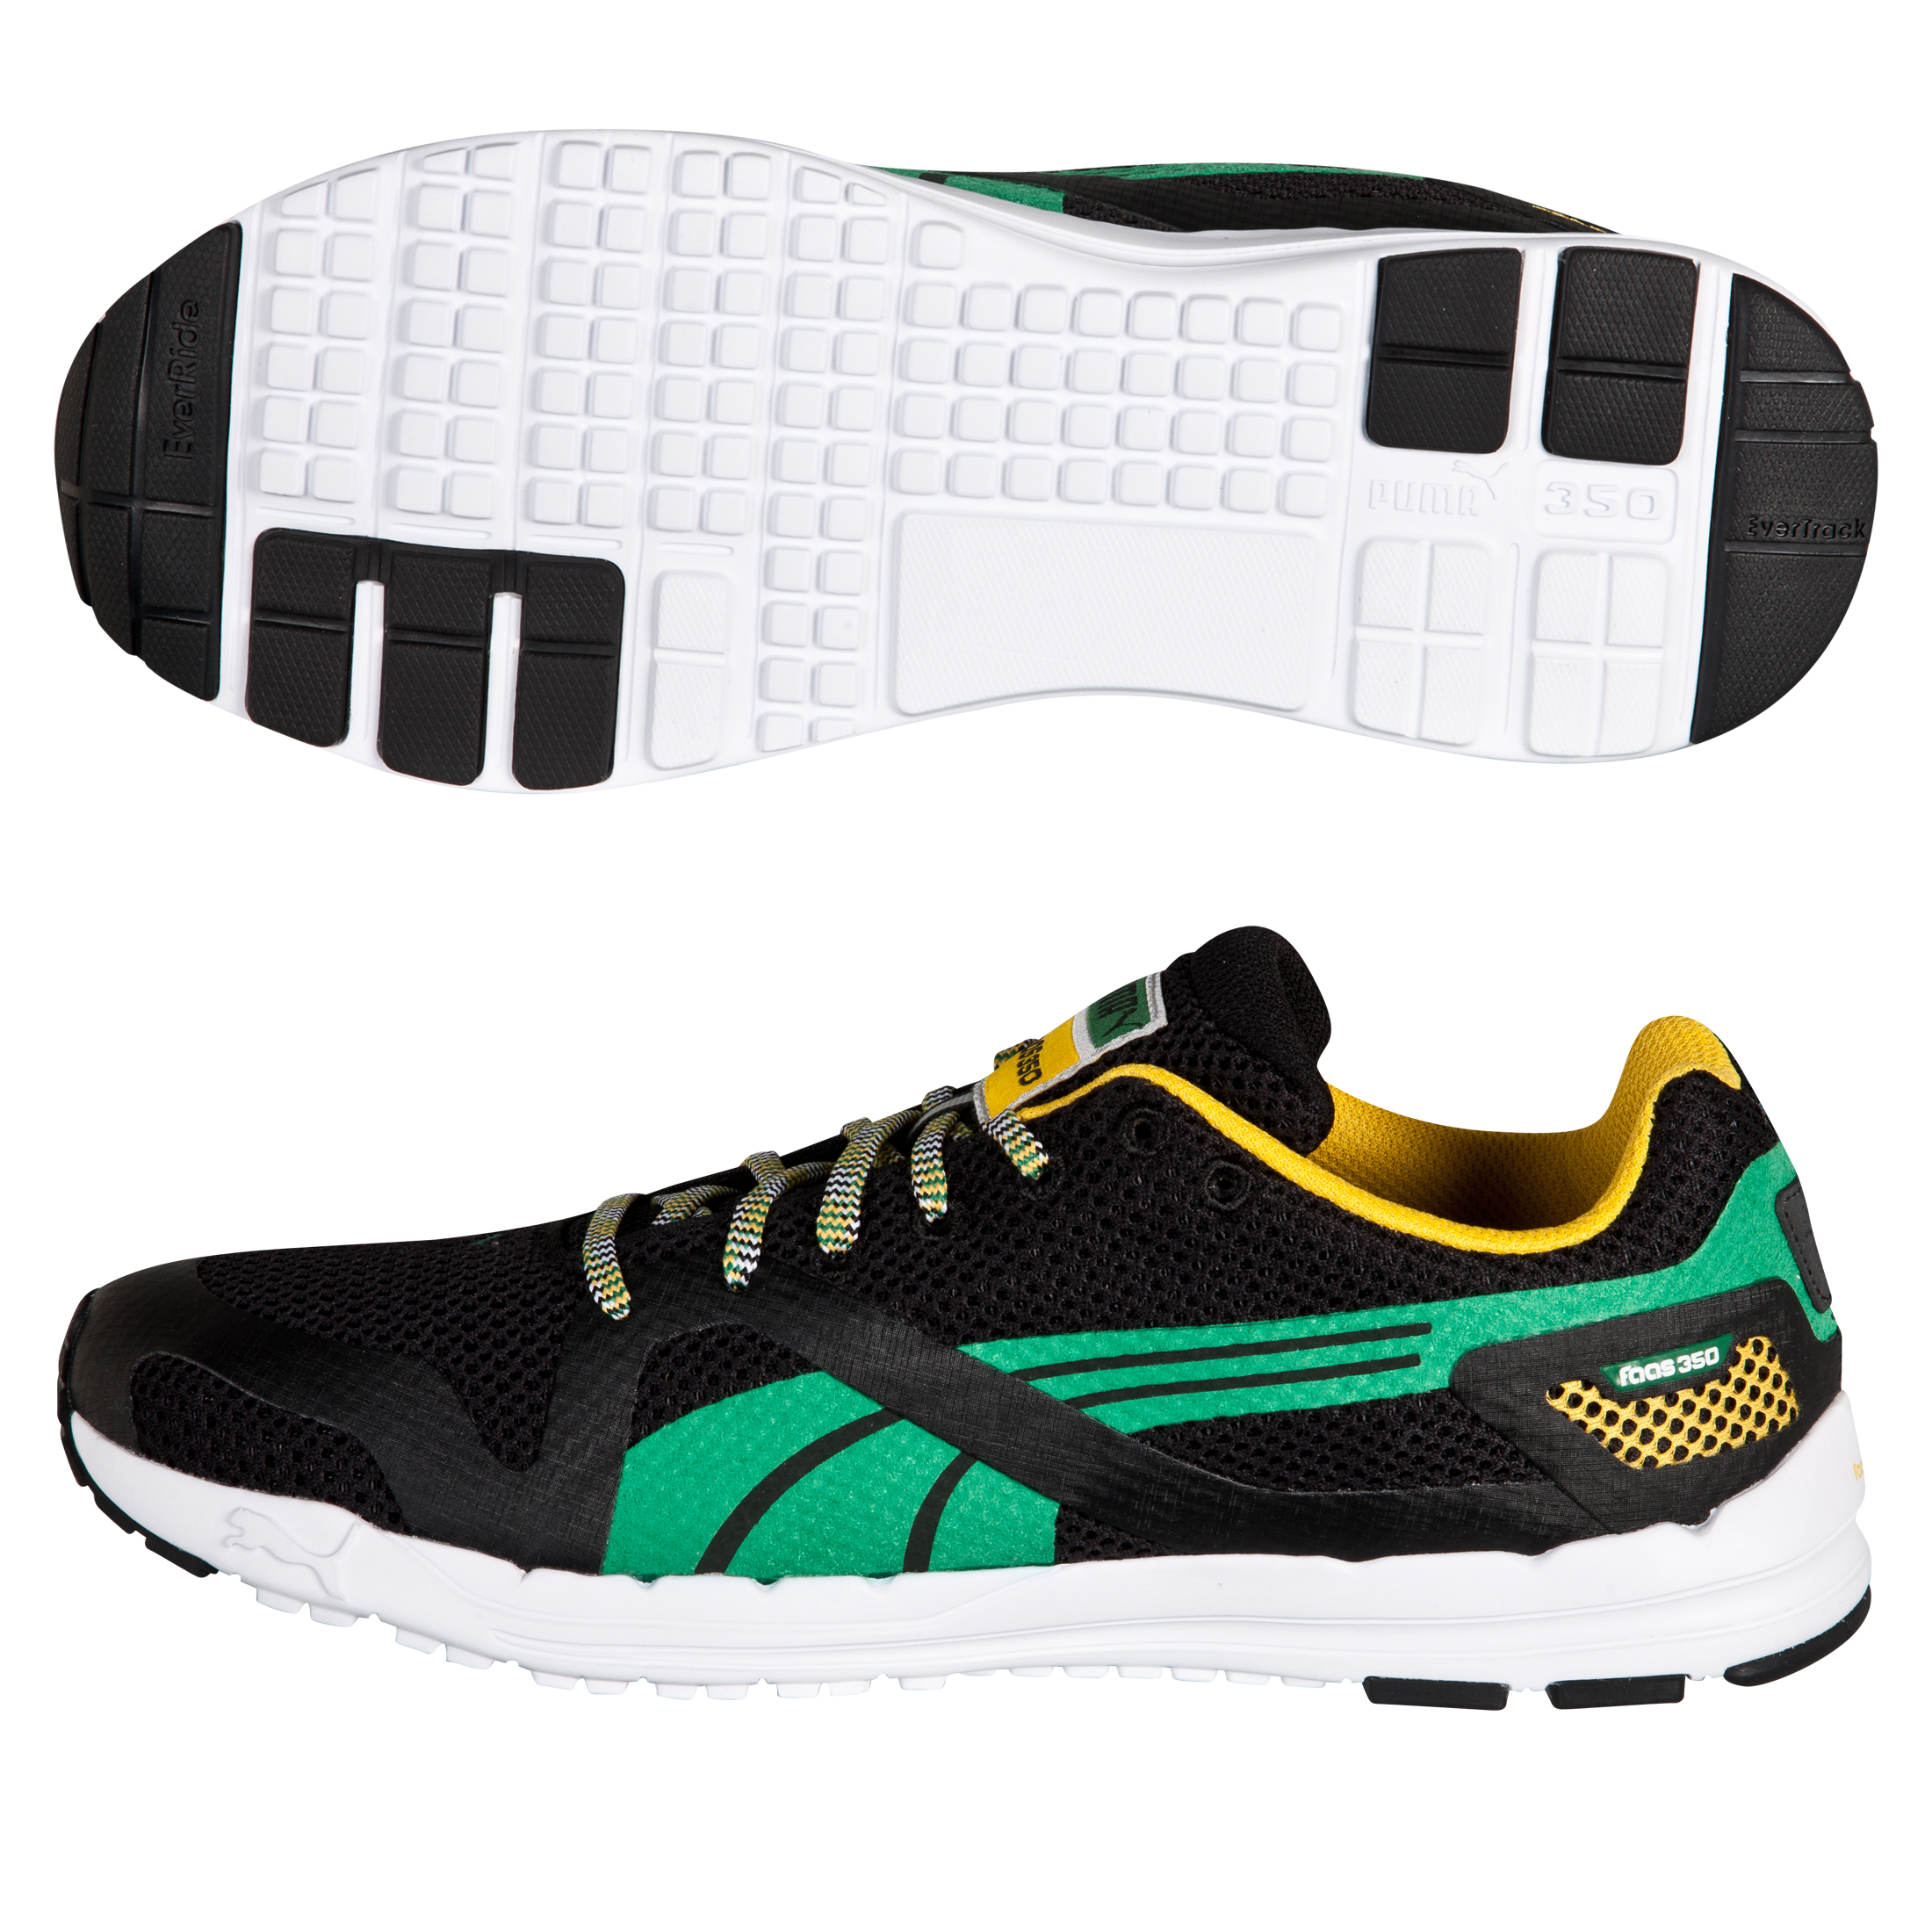 Puma Faas 350 JAM Running Trainers - Black/Amazon/Spectra Yellow